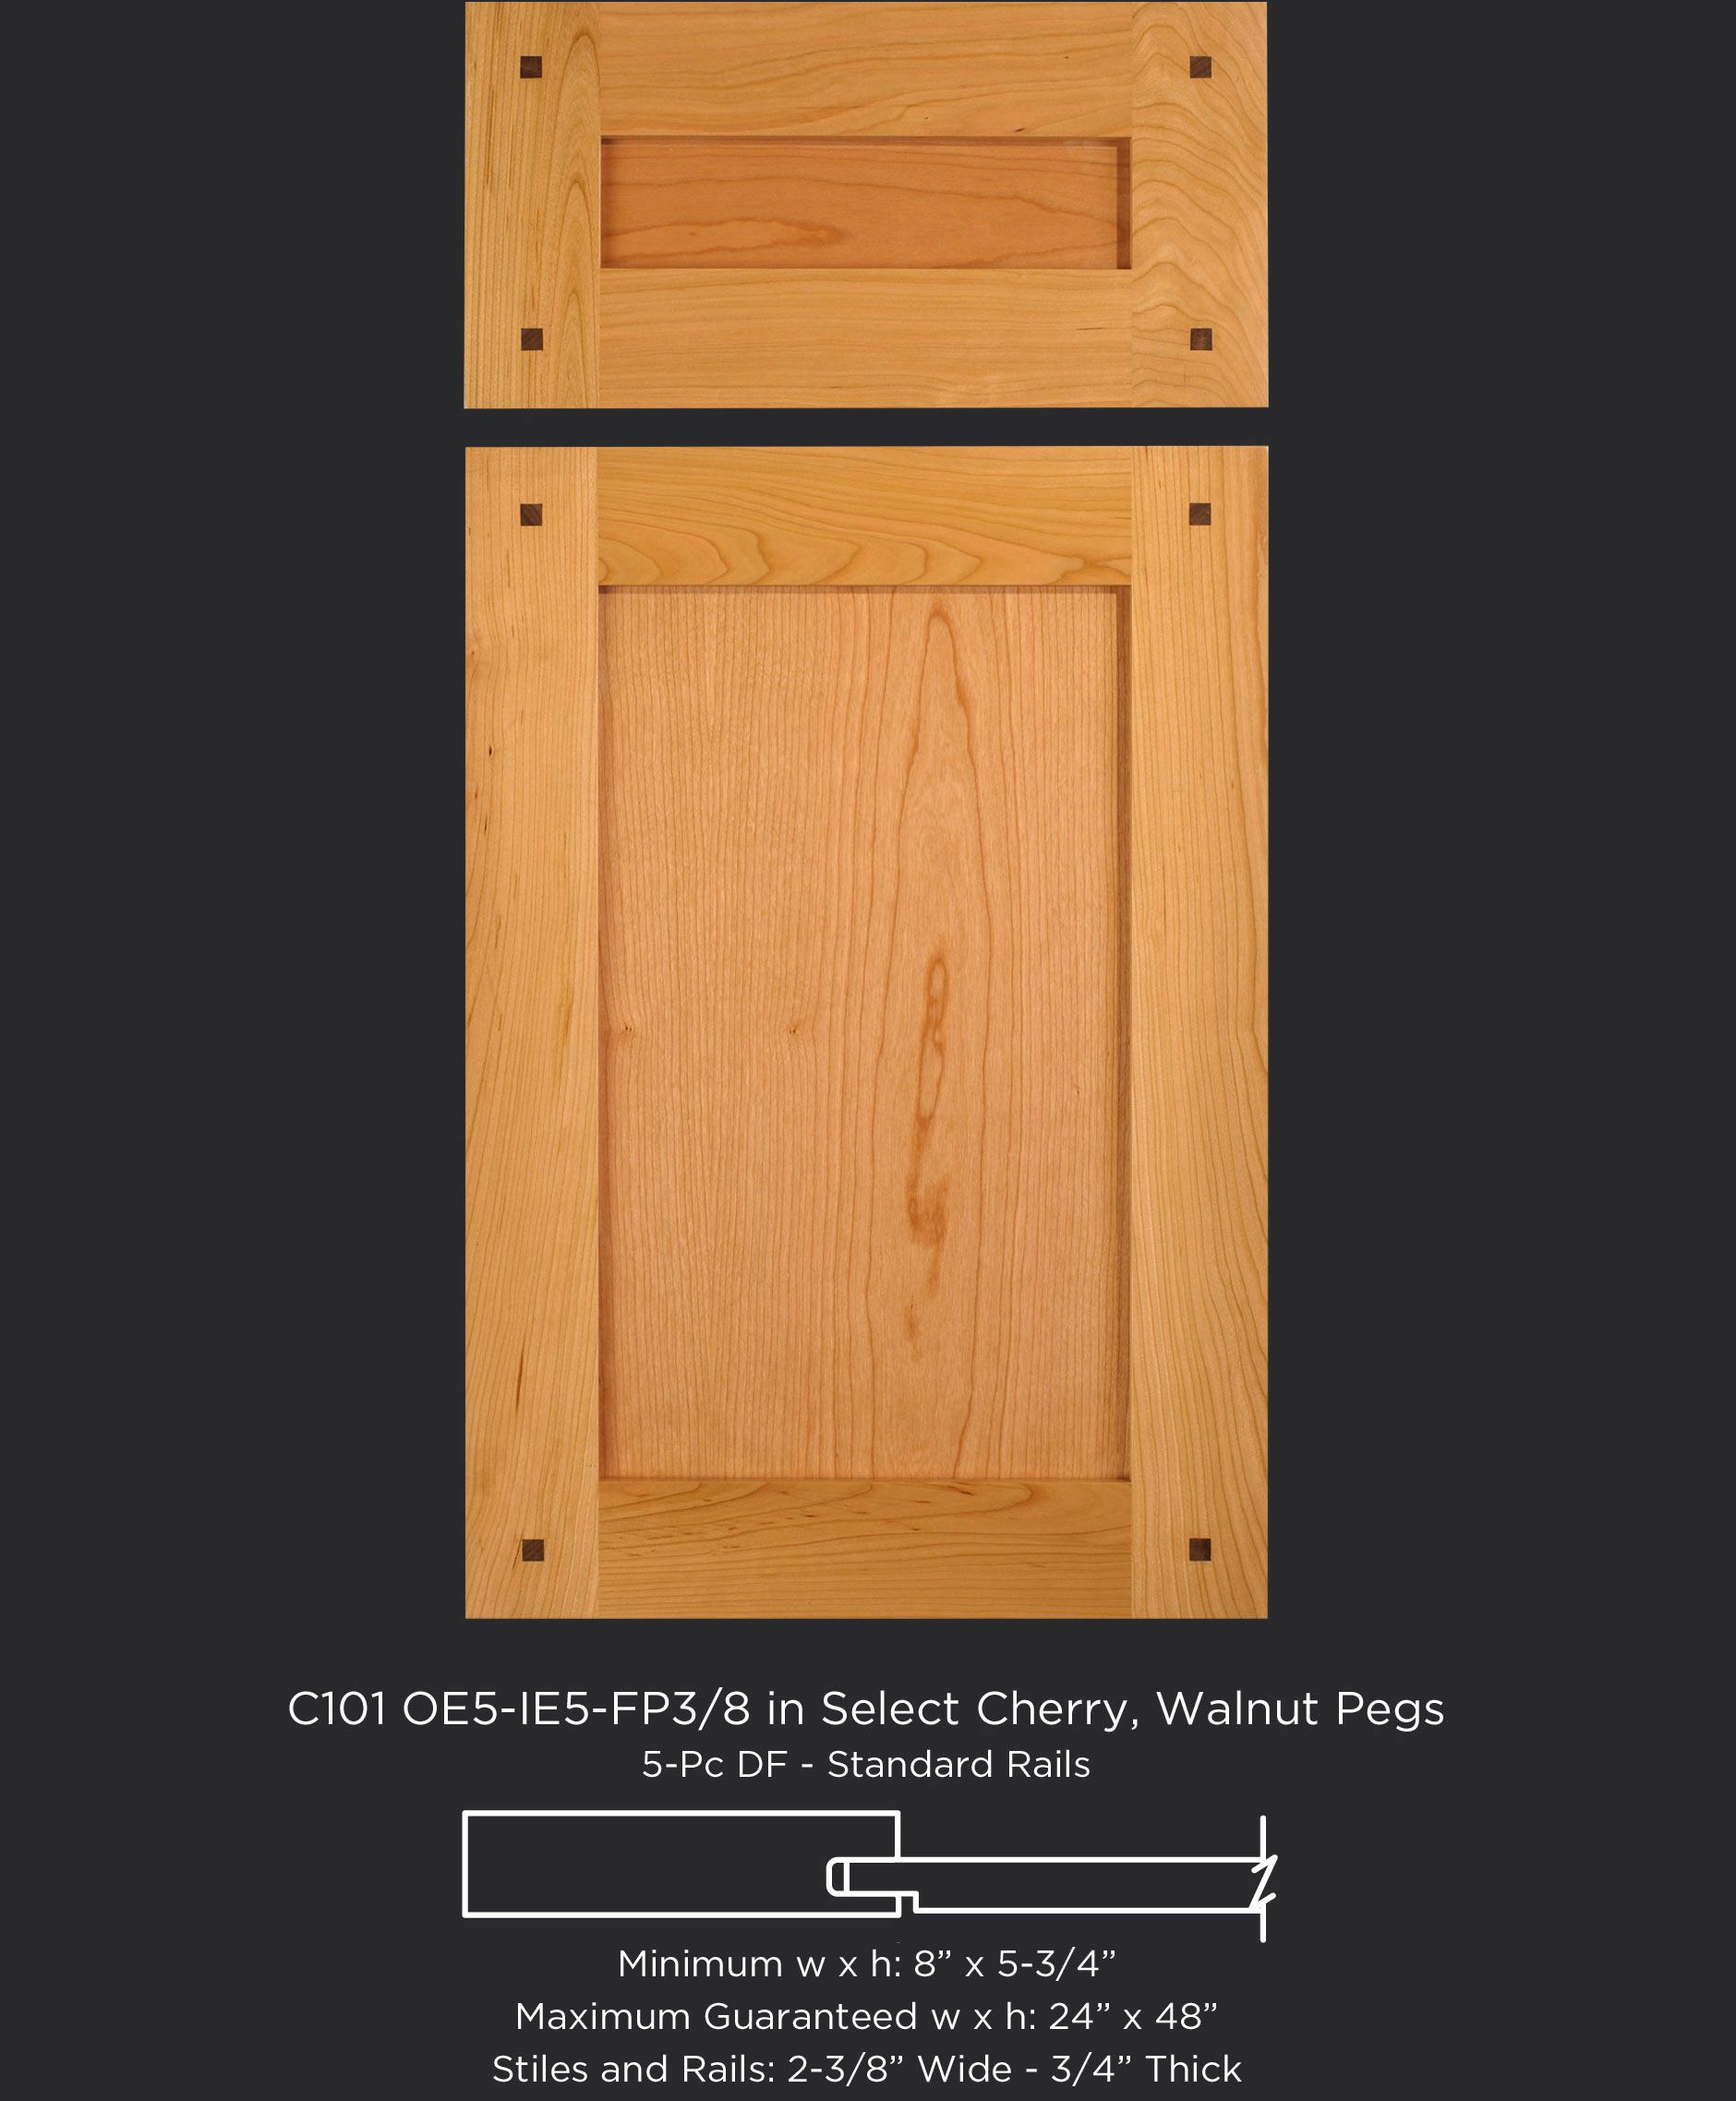 cherry shaker cabinet doors. Shaker Style Cabinet Door In Cherry With Walnut Pegs By TaylorCraft Company C101- Doors S